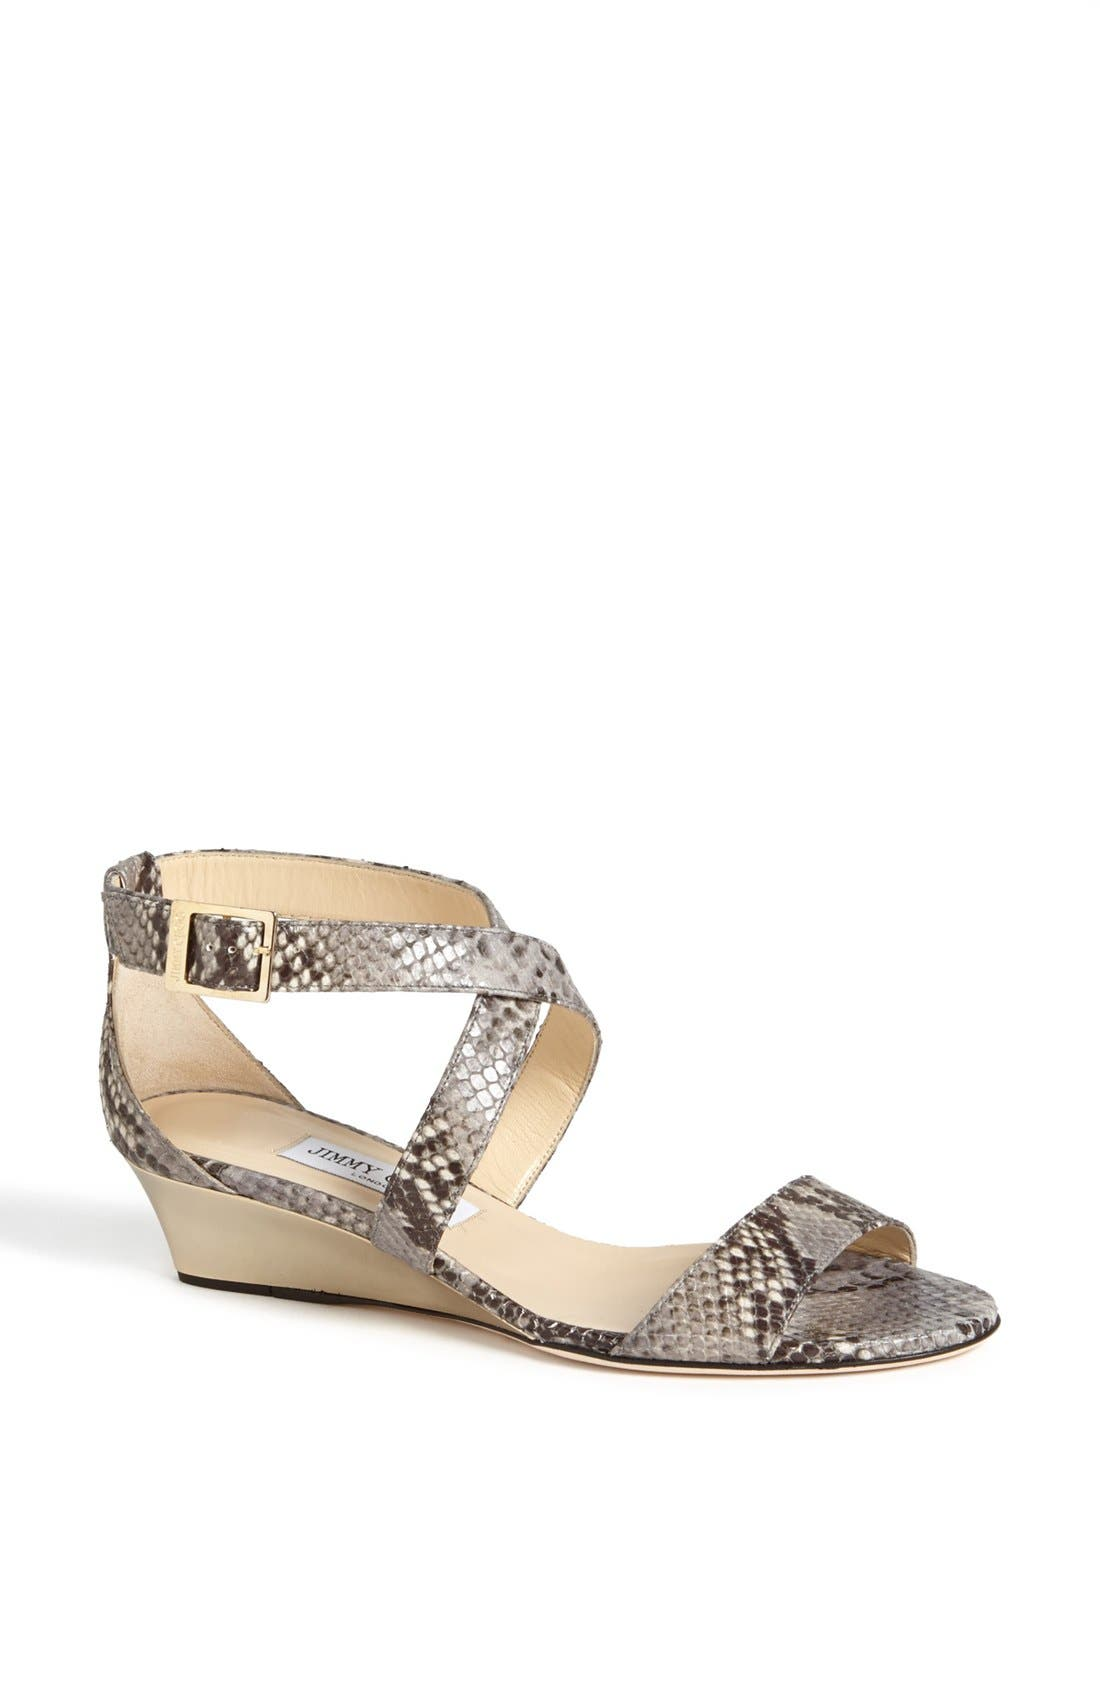 Main Image - Jimmy Choo 'Chiara' Wedge Sandal